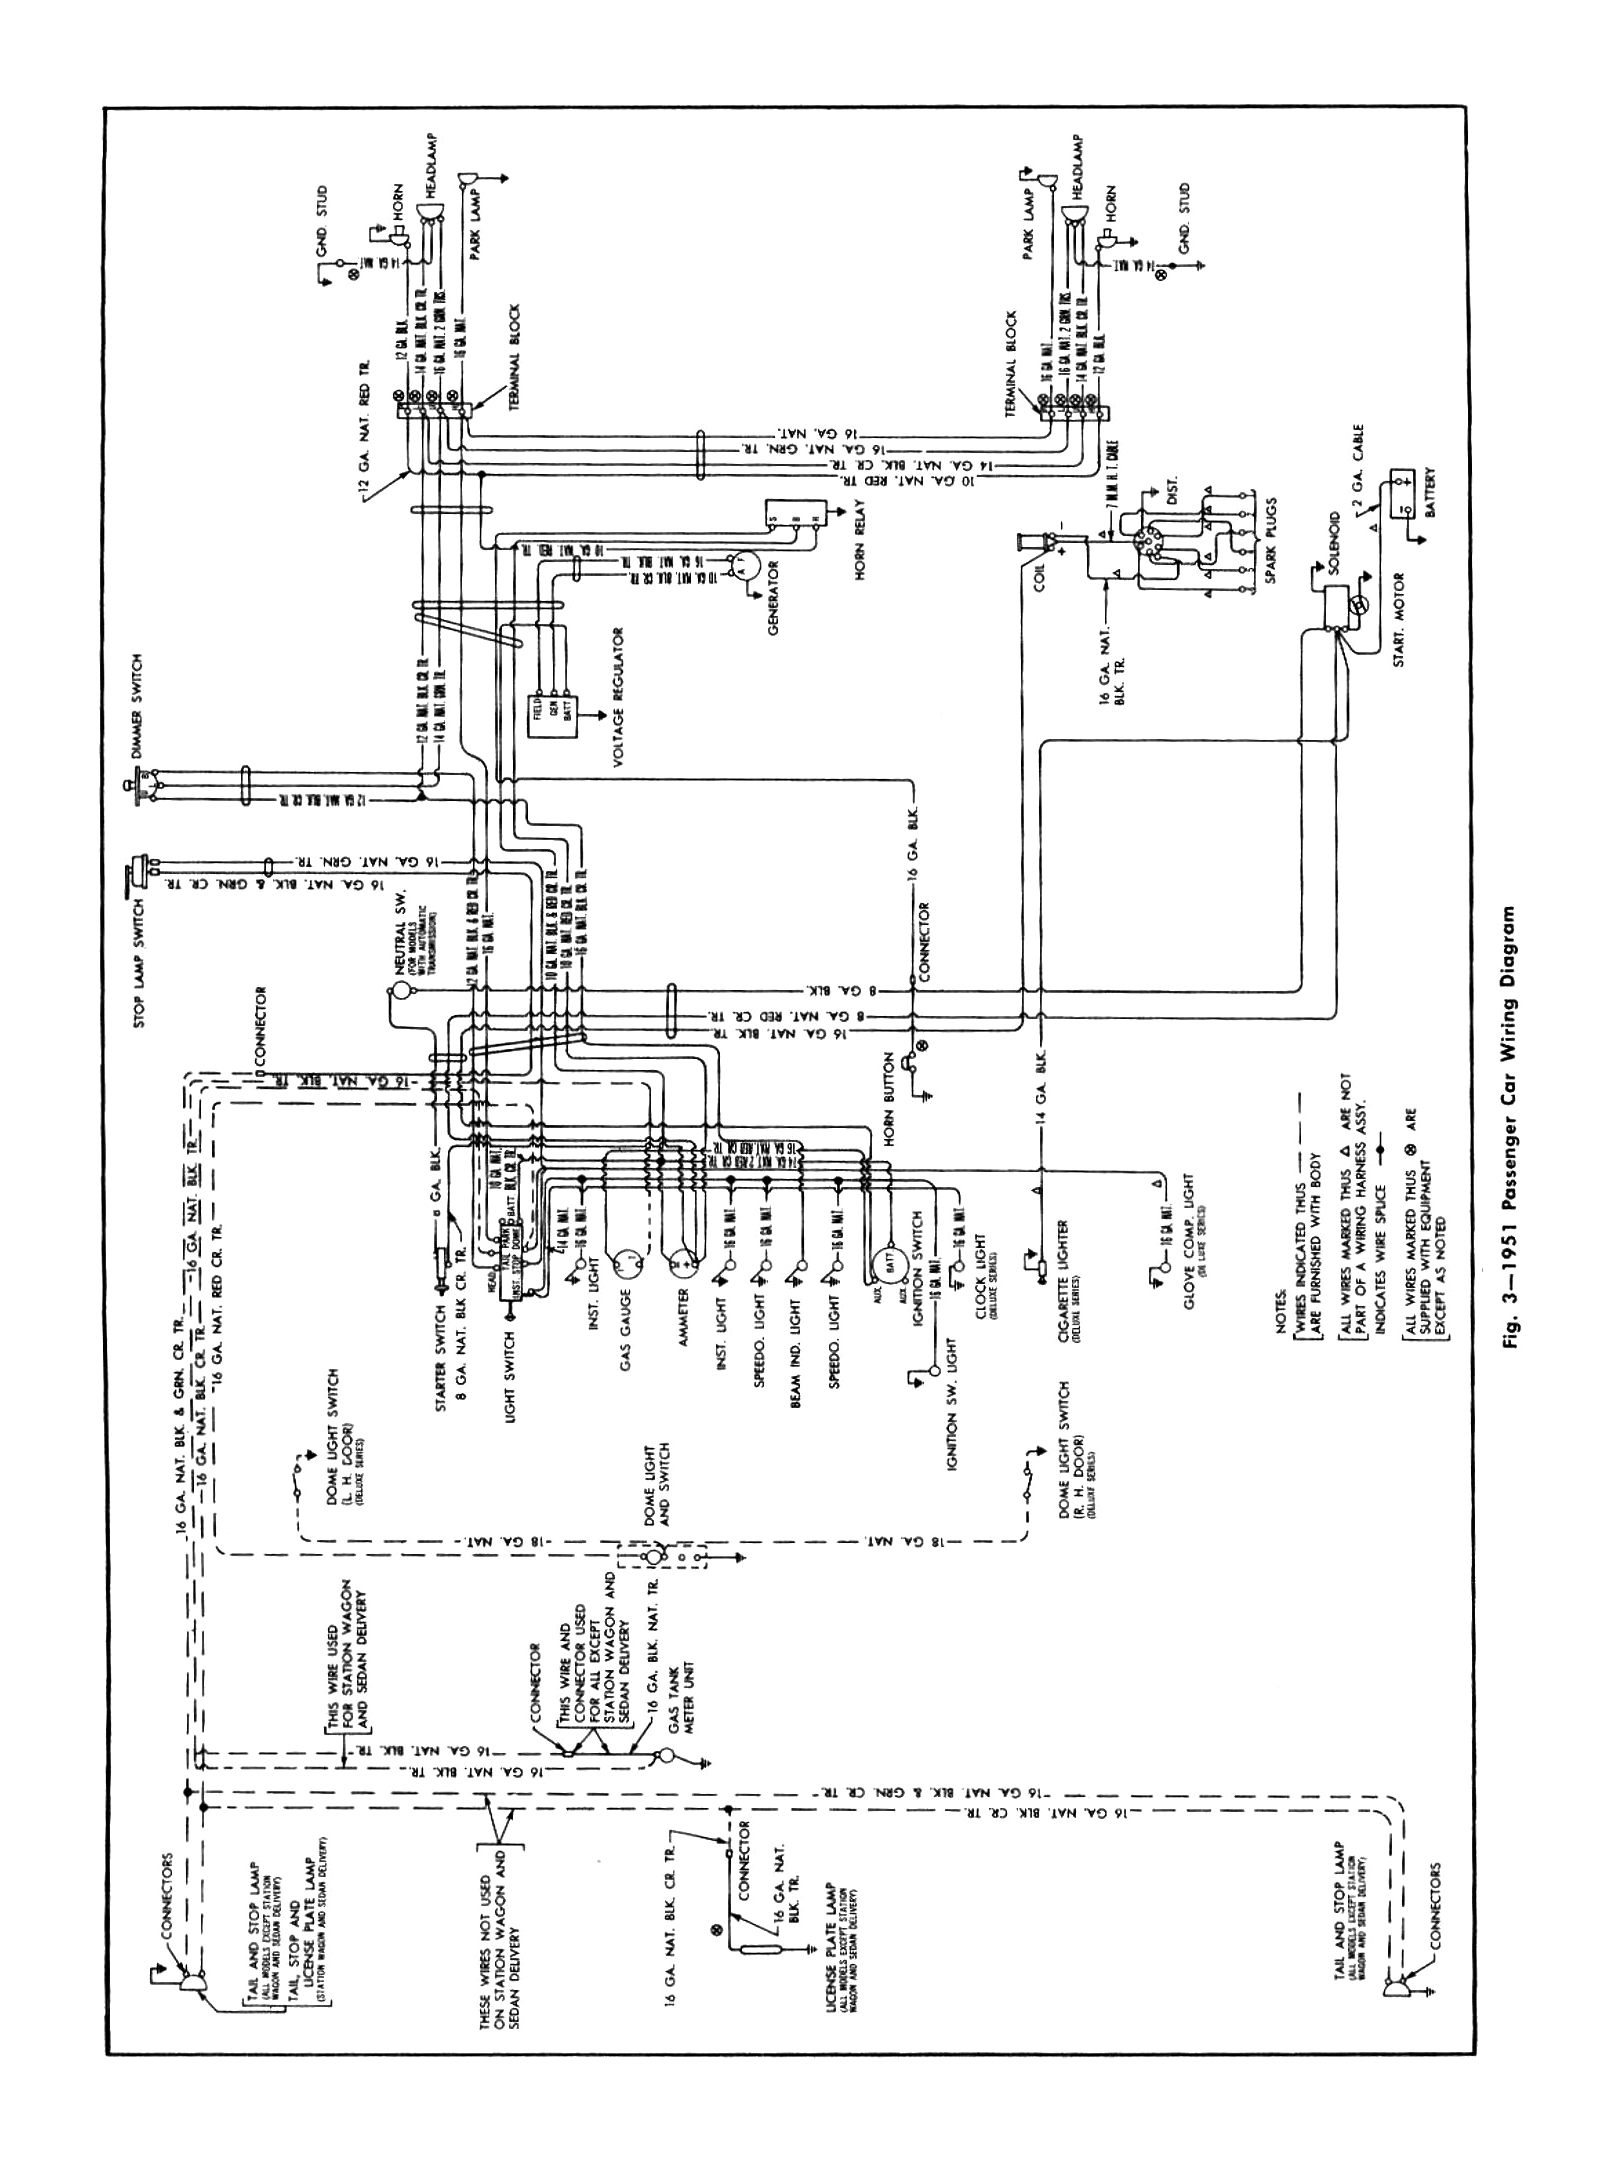 51car wiring loom diagram 1 2wire loom \u2022 wiring diagrams j squared co ez wiring mini 20 wiring diagram download at mr168.co